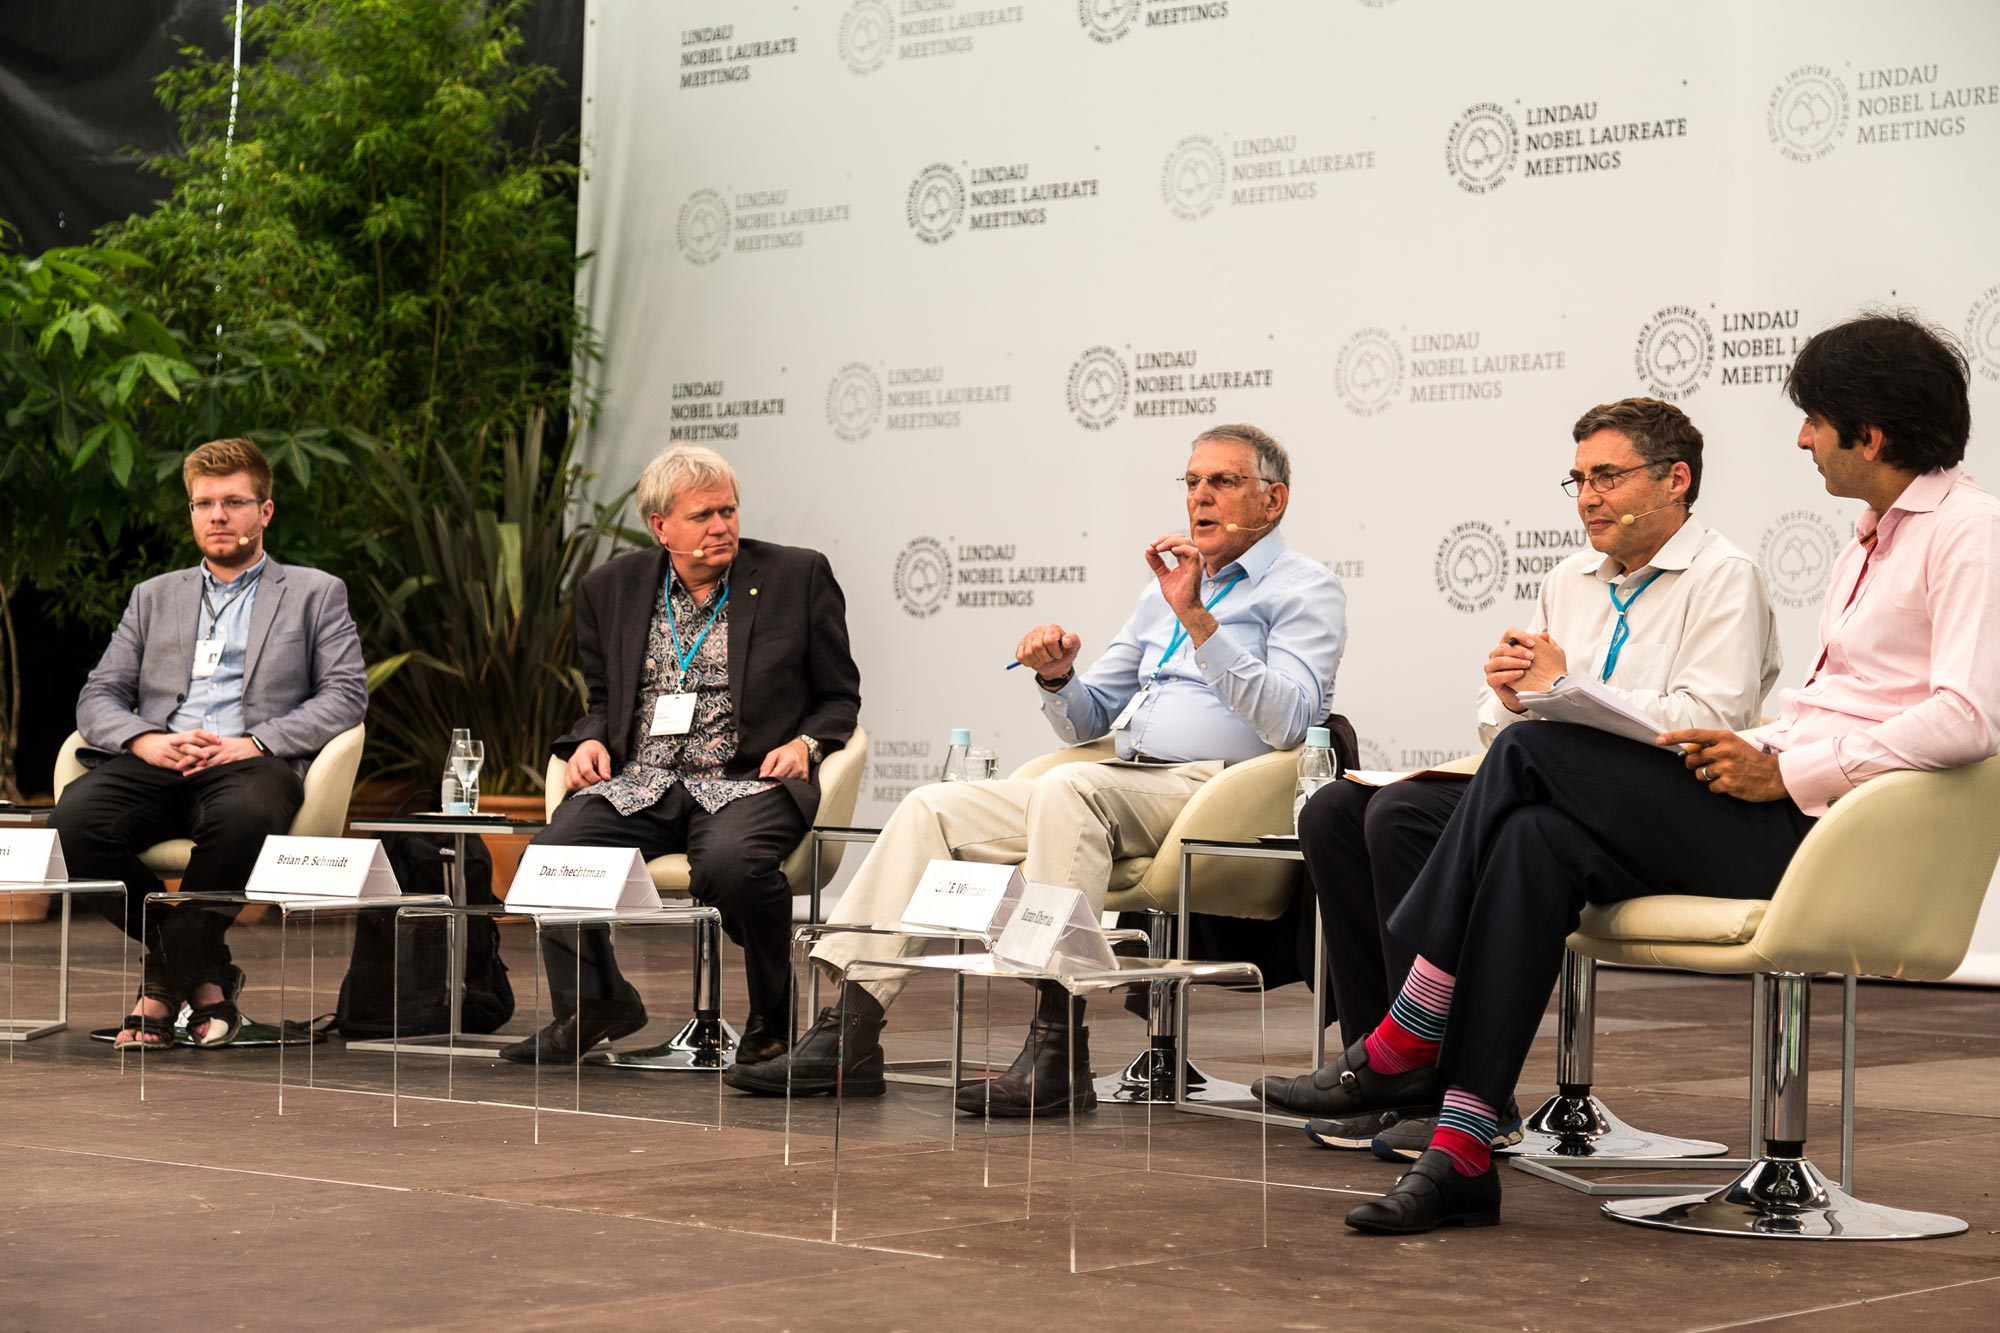 On the last day of #LiNo16 the future of science and education was the topic of a panel discussion. Photo: Ch. Flemming/Lindau Nobel Laureate Meetings.